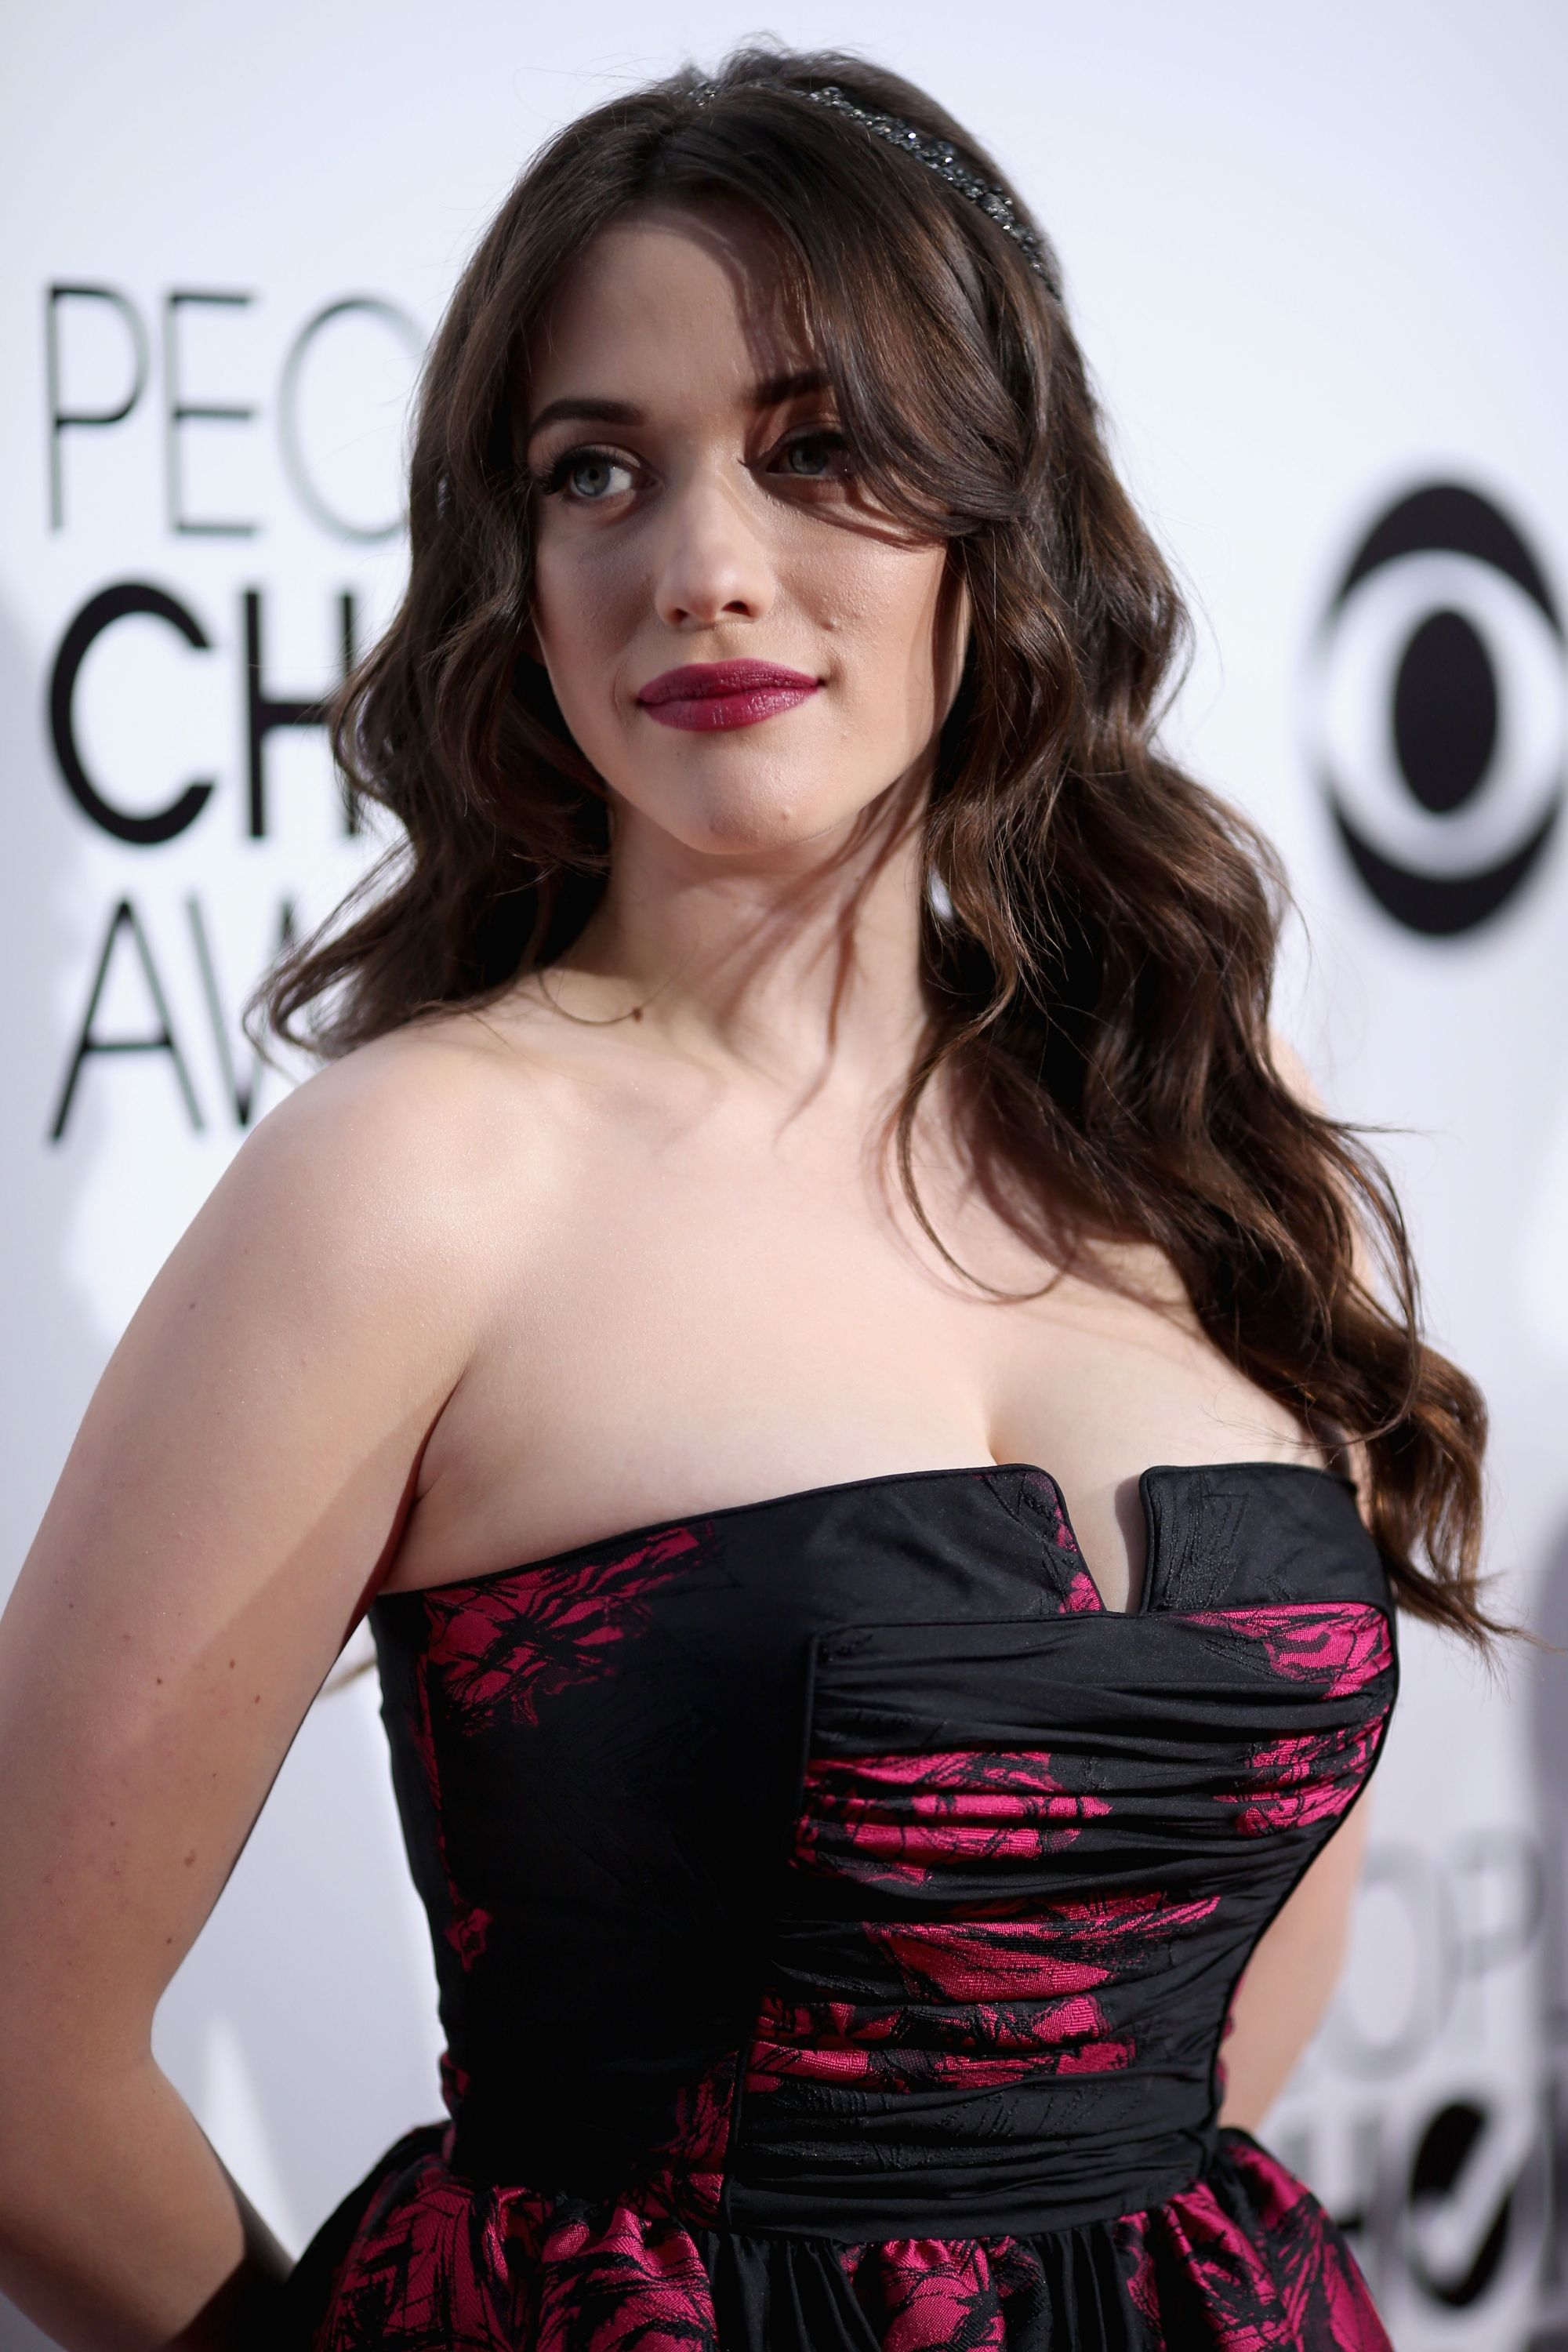 katherine litwack known professionally as kat dennings is an american actress like